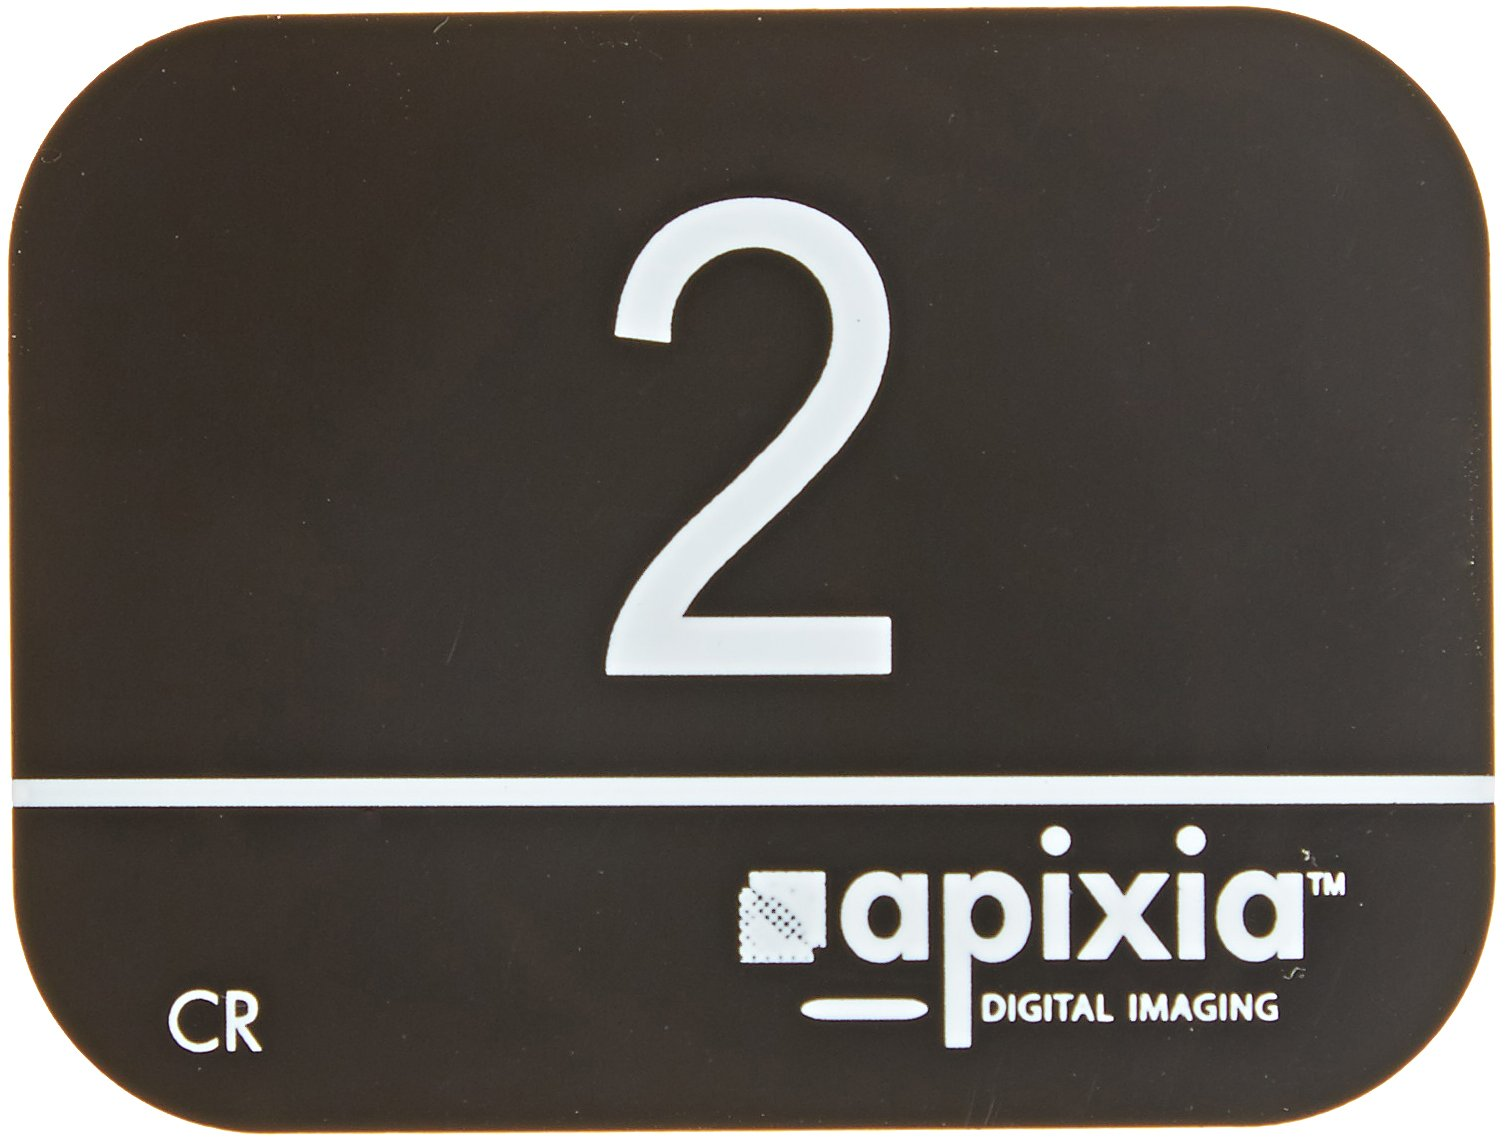 Apixia 10802 Black-Cardboard Plastic, Phosphor Plates, Size 2, 41mm  x 31mm, for Typical Intraoral X-rays (Pack of 1)